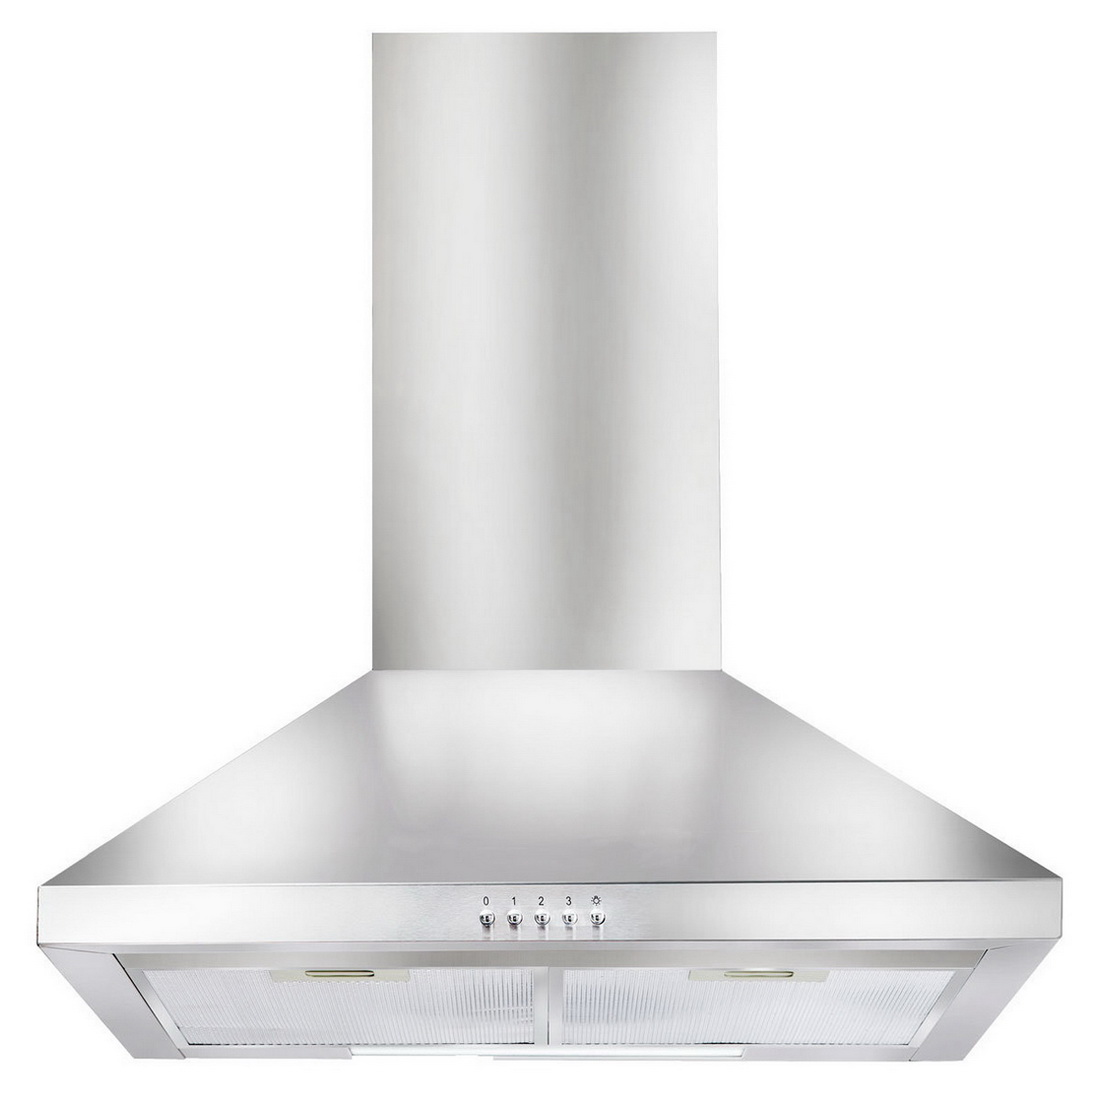 Canopy Wall Mount Rangehood 60cm Stainless Steel ACH600X